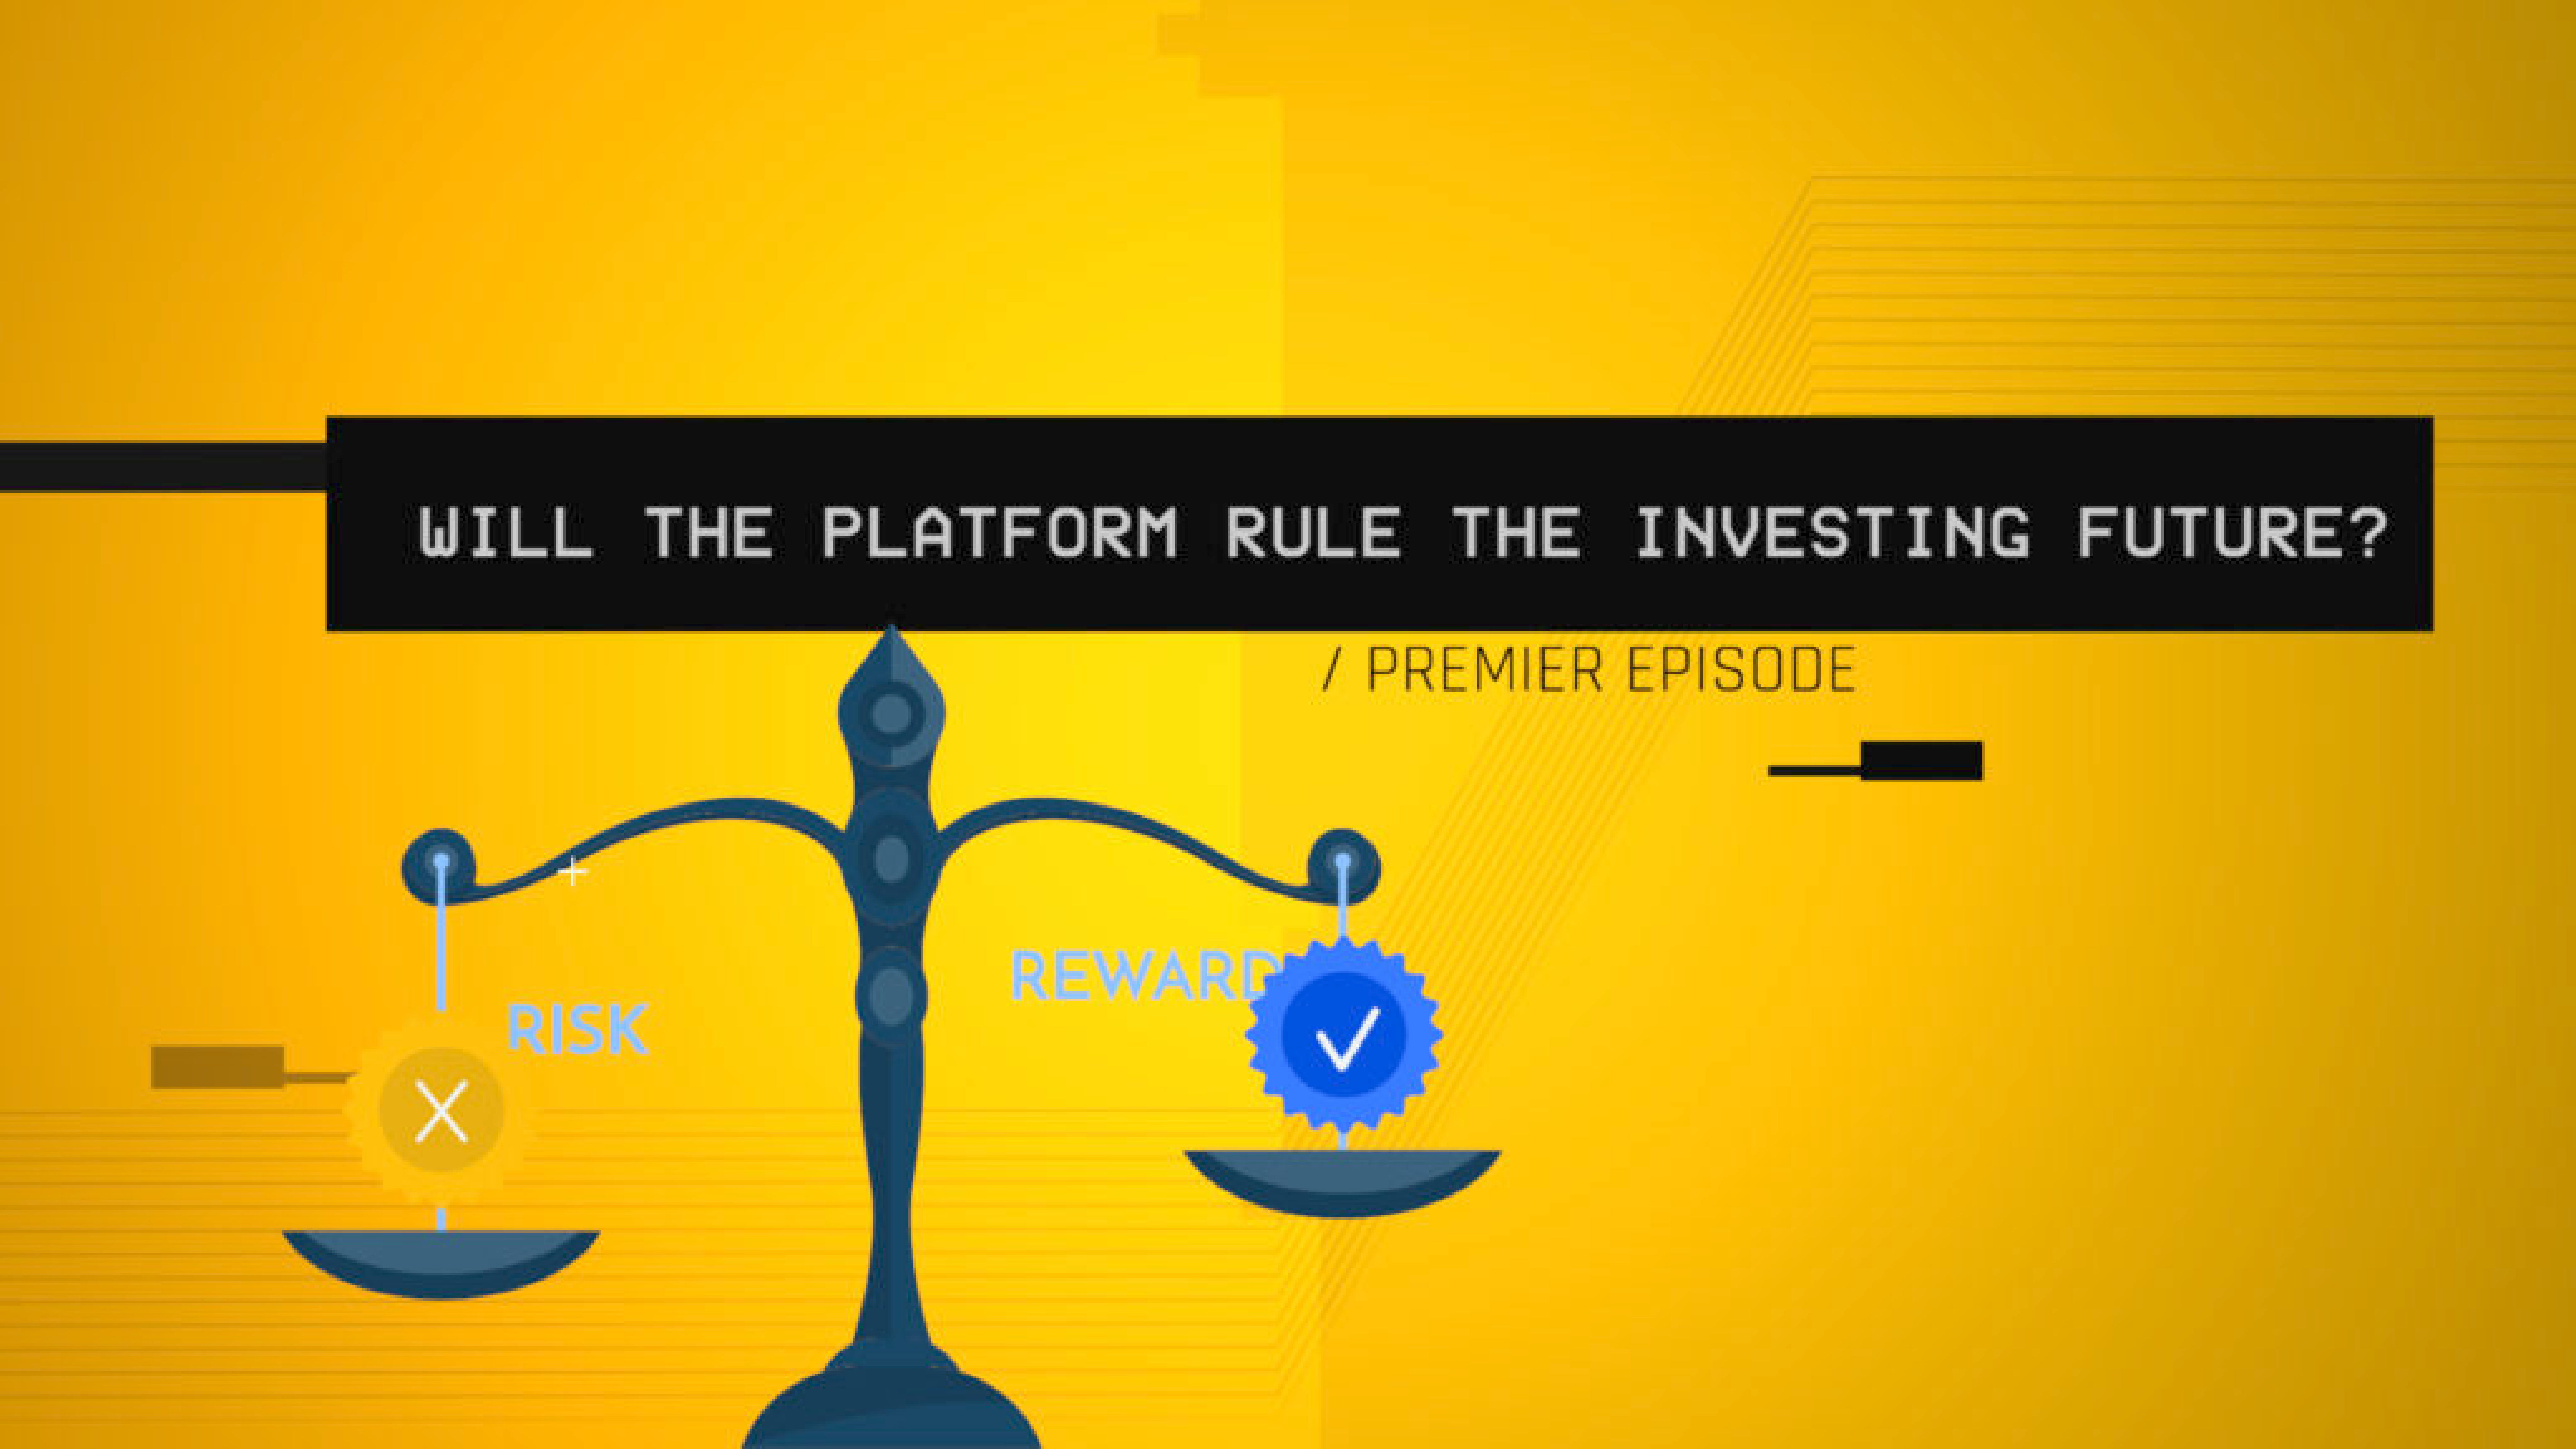 Will the Platform Rule the Investing Future? (S1 E1)